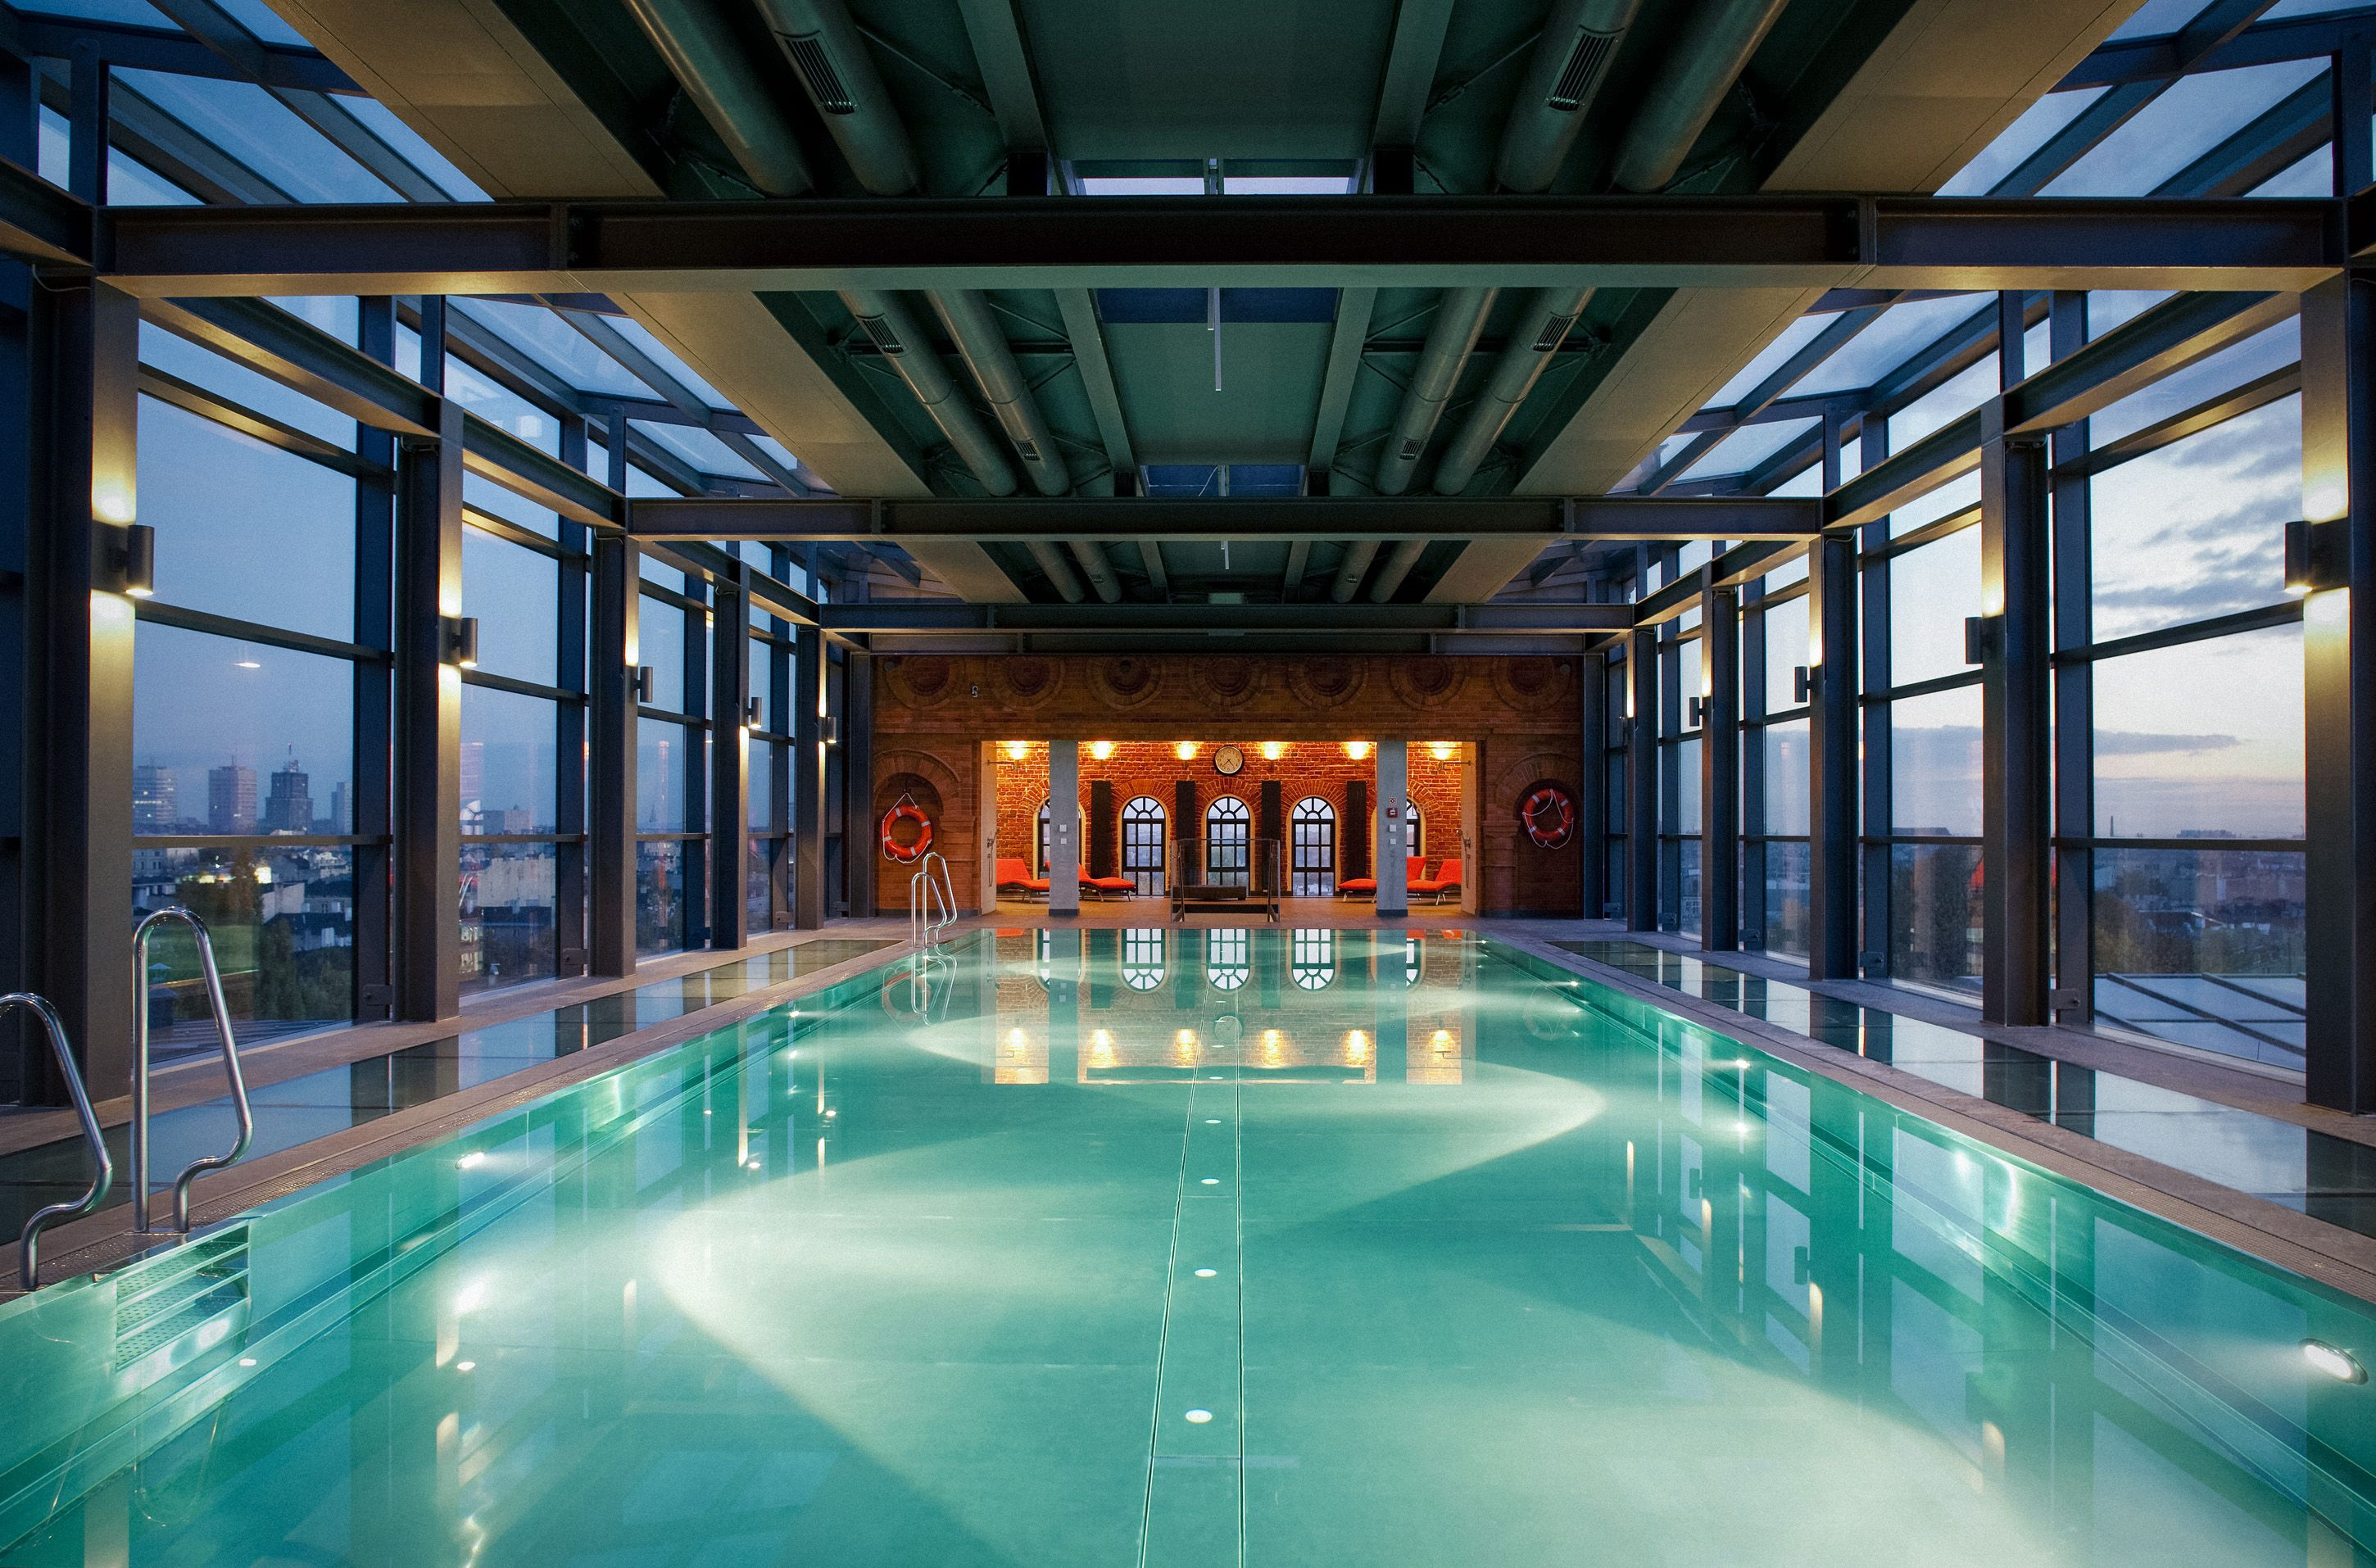 The Best Swimming Pool Ever Can Be Found At The Vienna